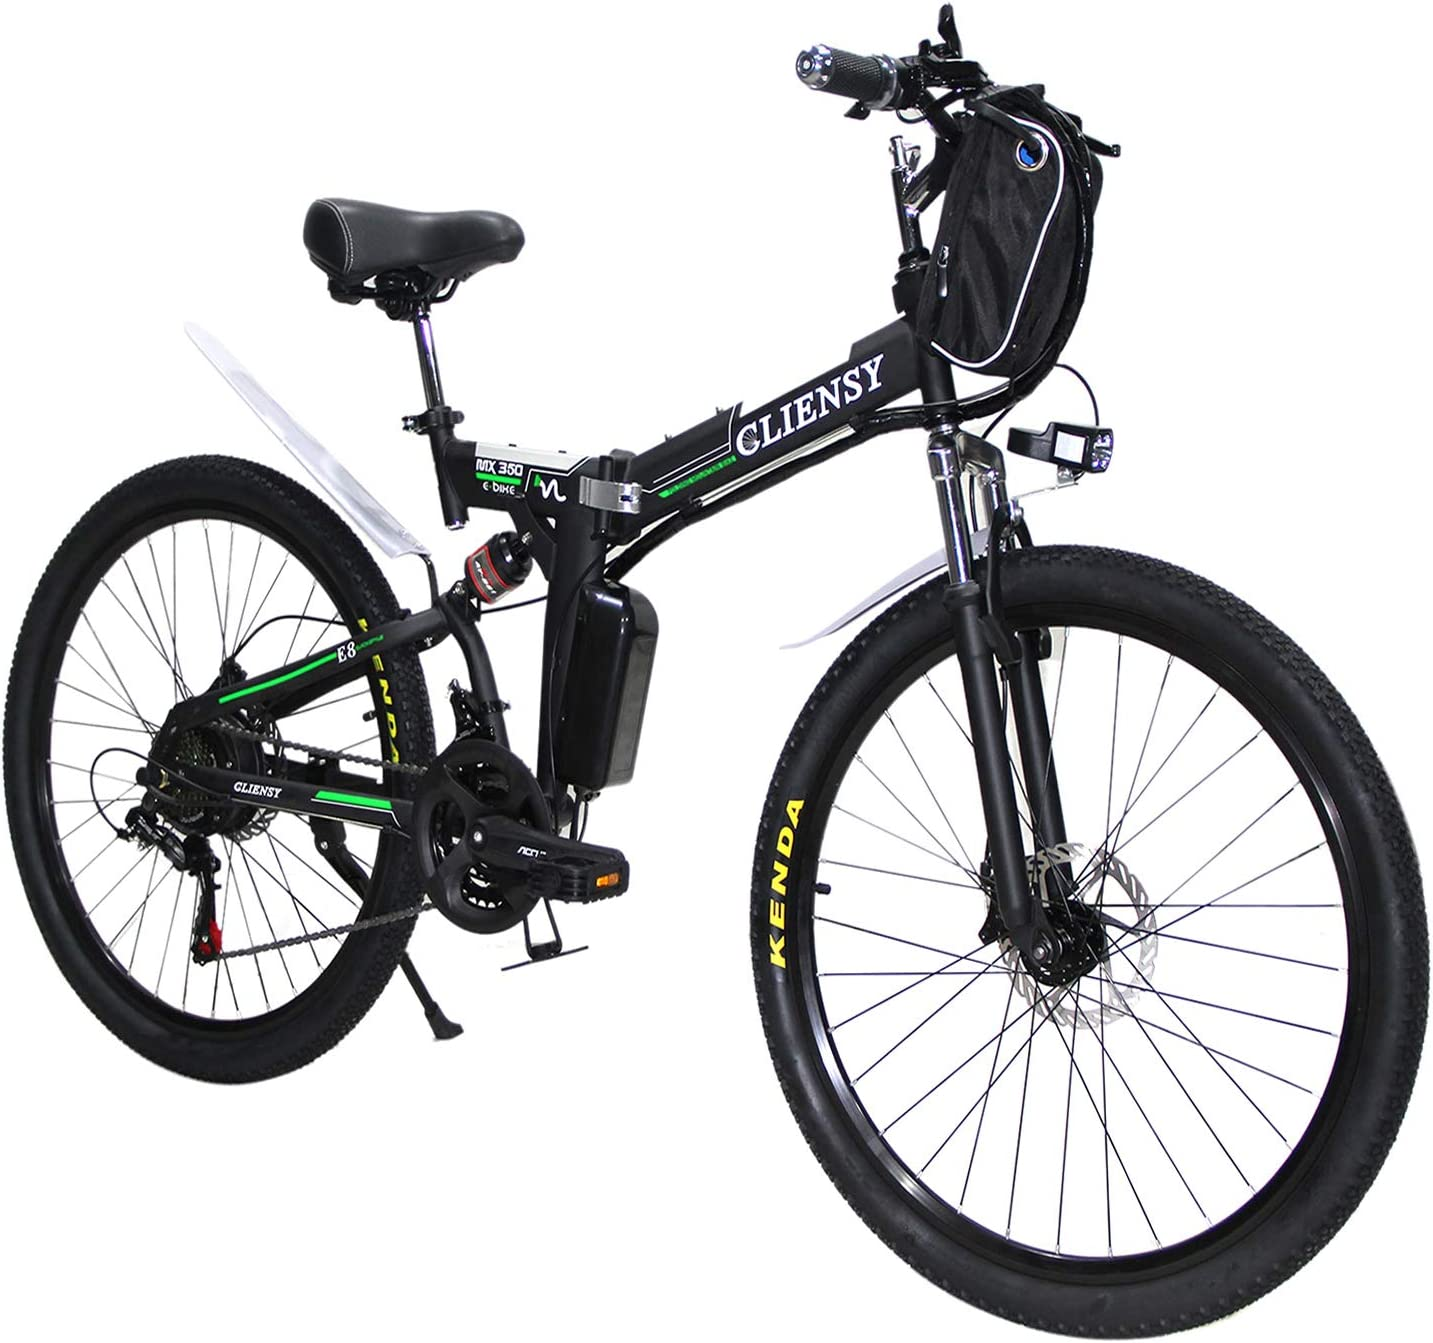 CLIENSY 26 Inch Electric Bike, 350W Folding E-Bike with Removable 36V 8AH Lithium Battery for Adults, 21 Speed Shifter Green